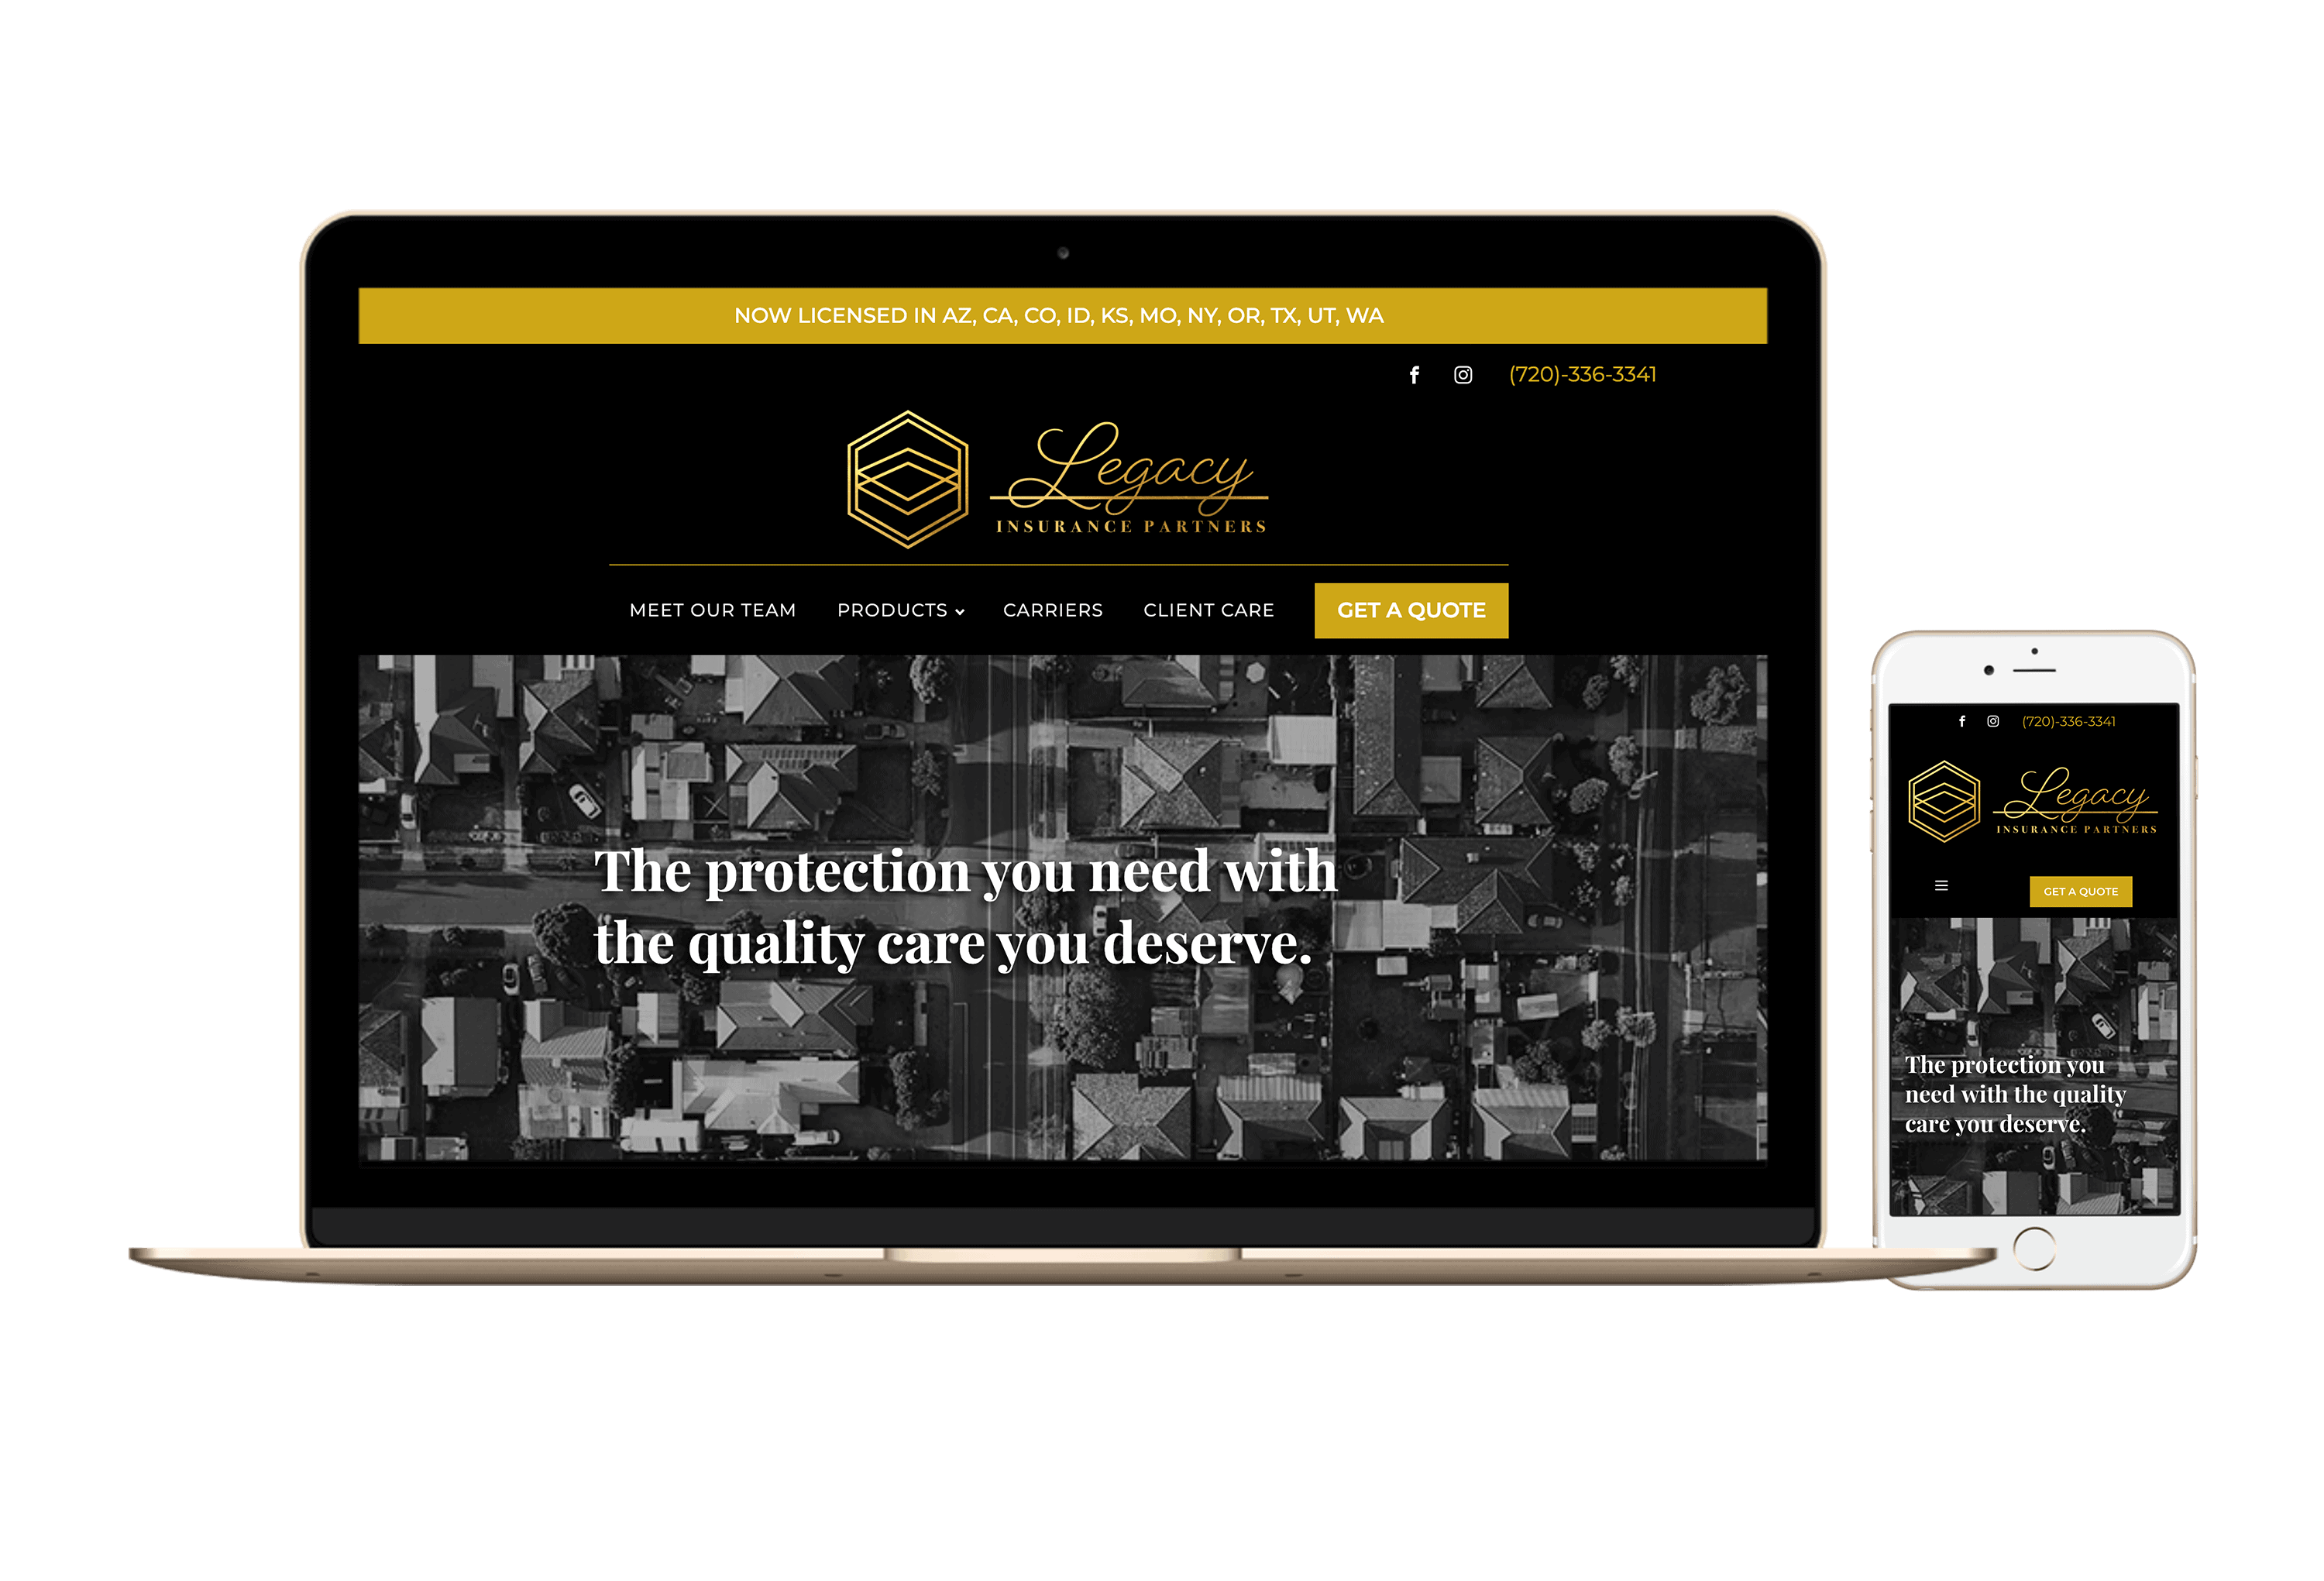 desktop and mobile mockup of Legacy Insurance Partner website